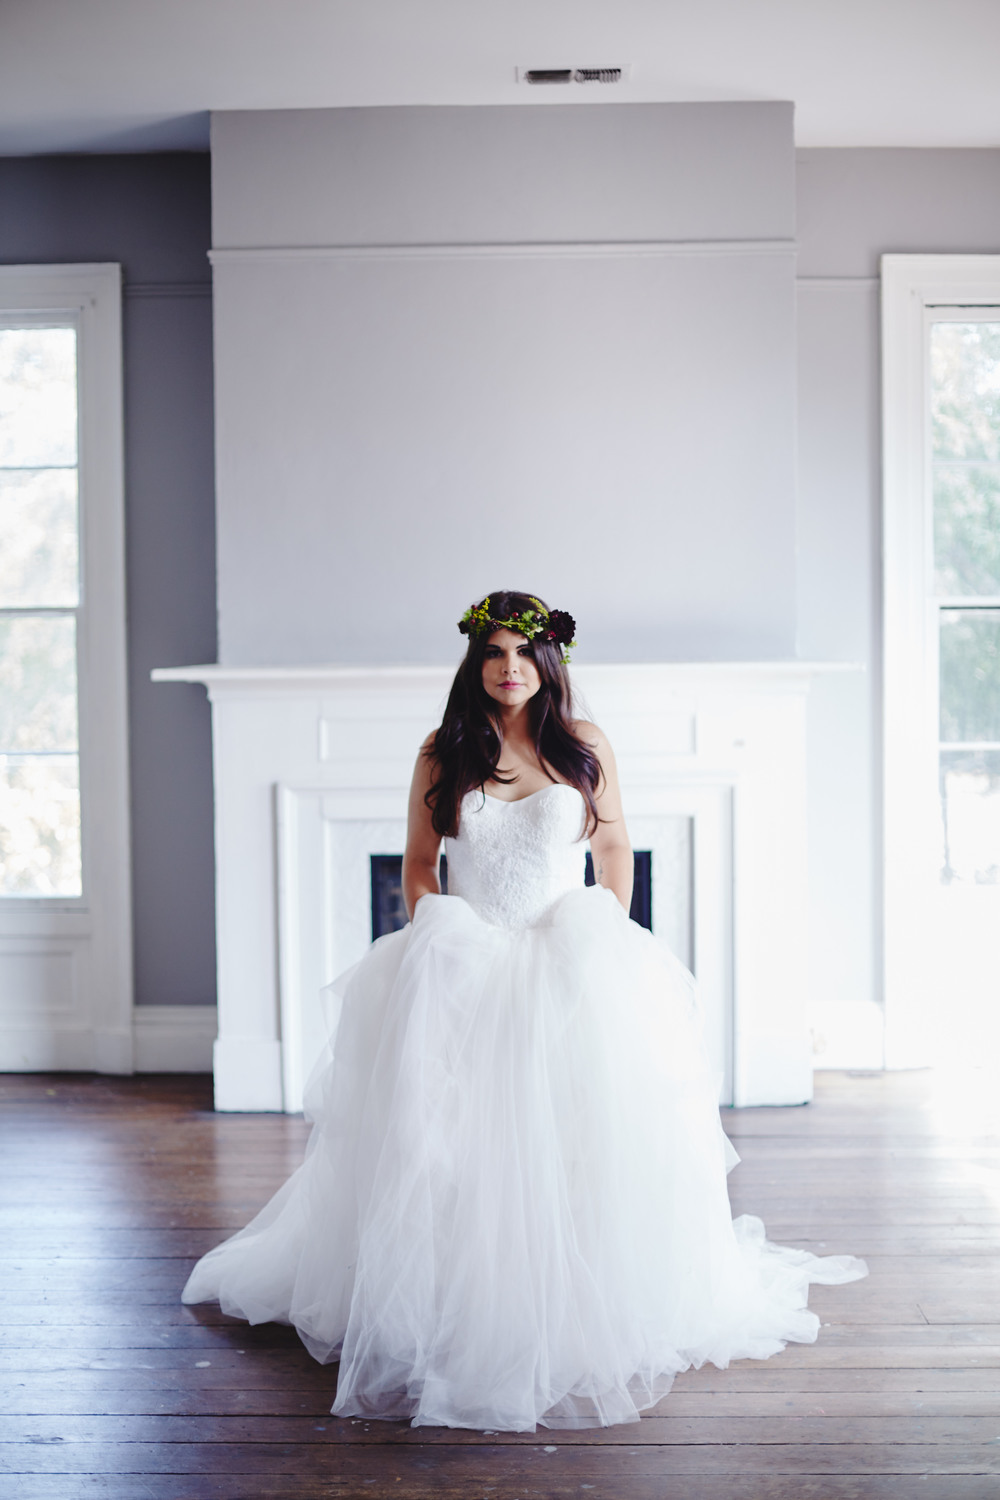 Styled_Session_Cherie_Bridal_Portraits_House_of_the_Bride 69.jpg